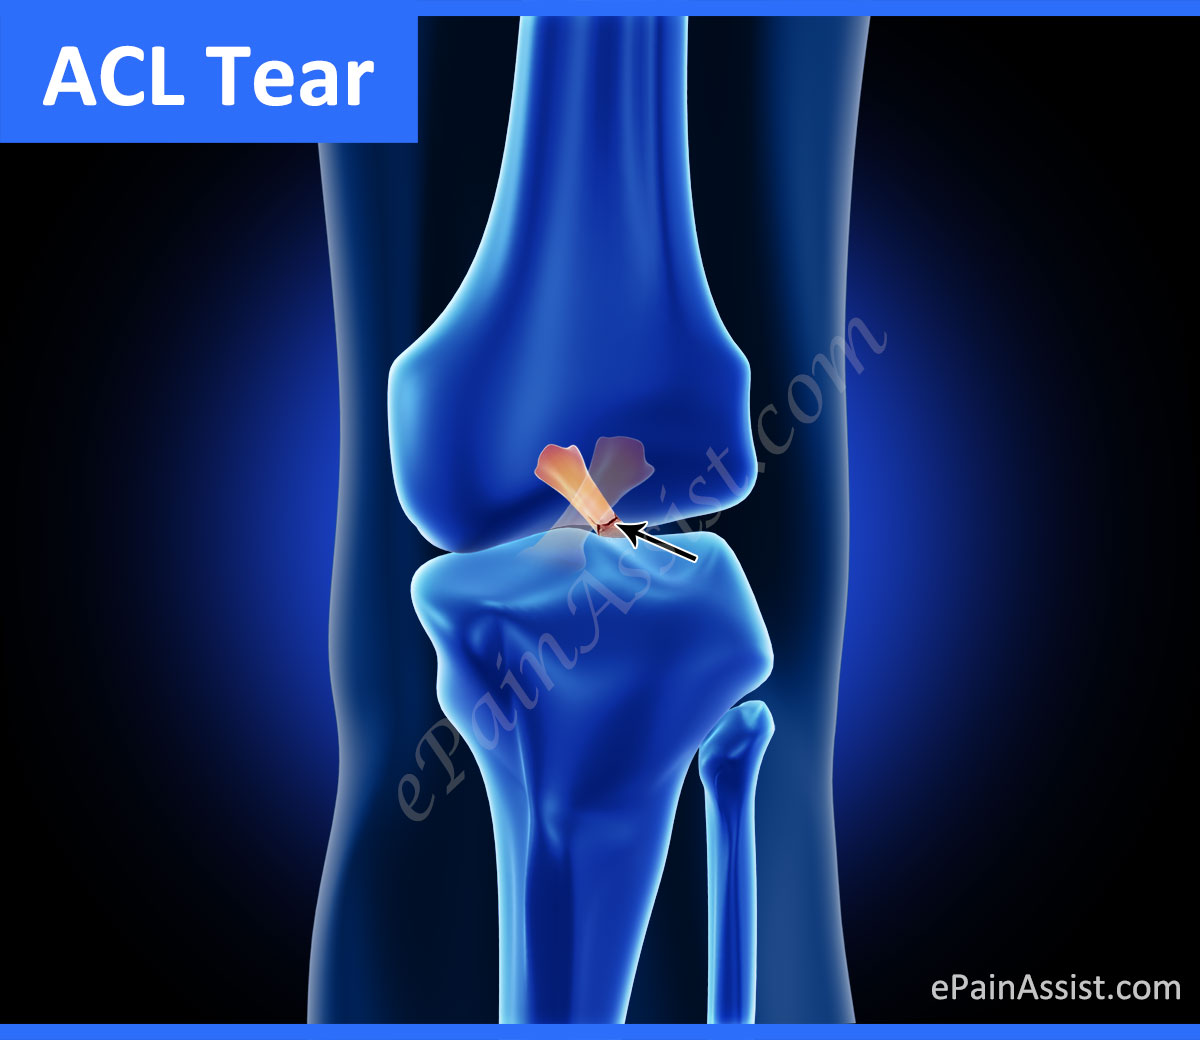 a look at the anterior cruciate ligament injuries in sports Injuries to the anterior cruciate ligament (acl) are immediately disabling and are associated with long-term consequences, such as posttraumatic osteoarthritis it is important to have a comprehensive understanding of all possible risk factors for acl injury to identify individuals who are at risk.